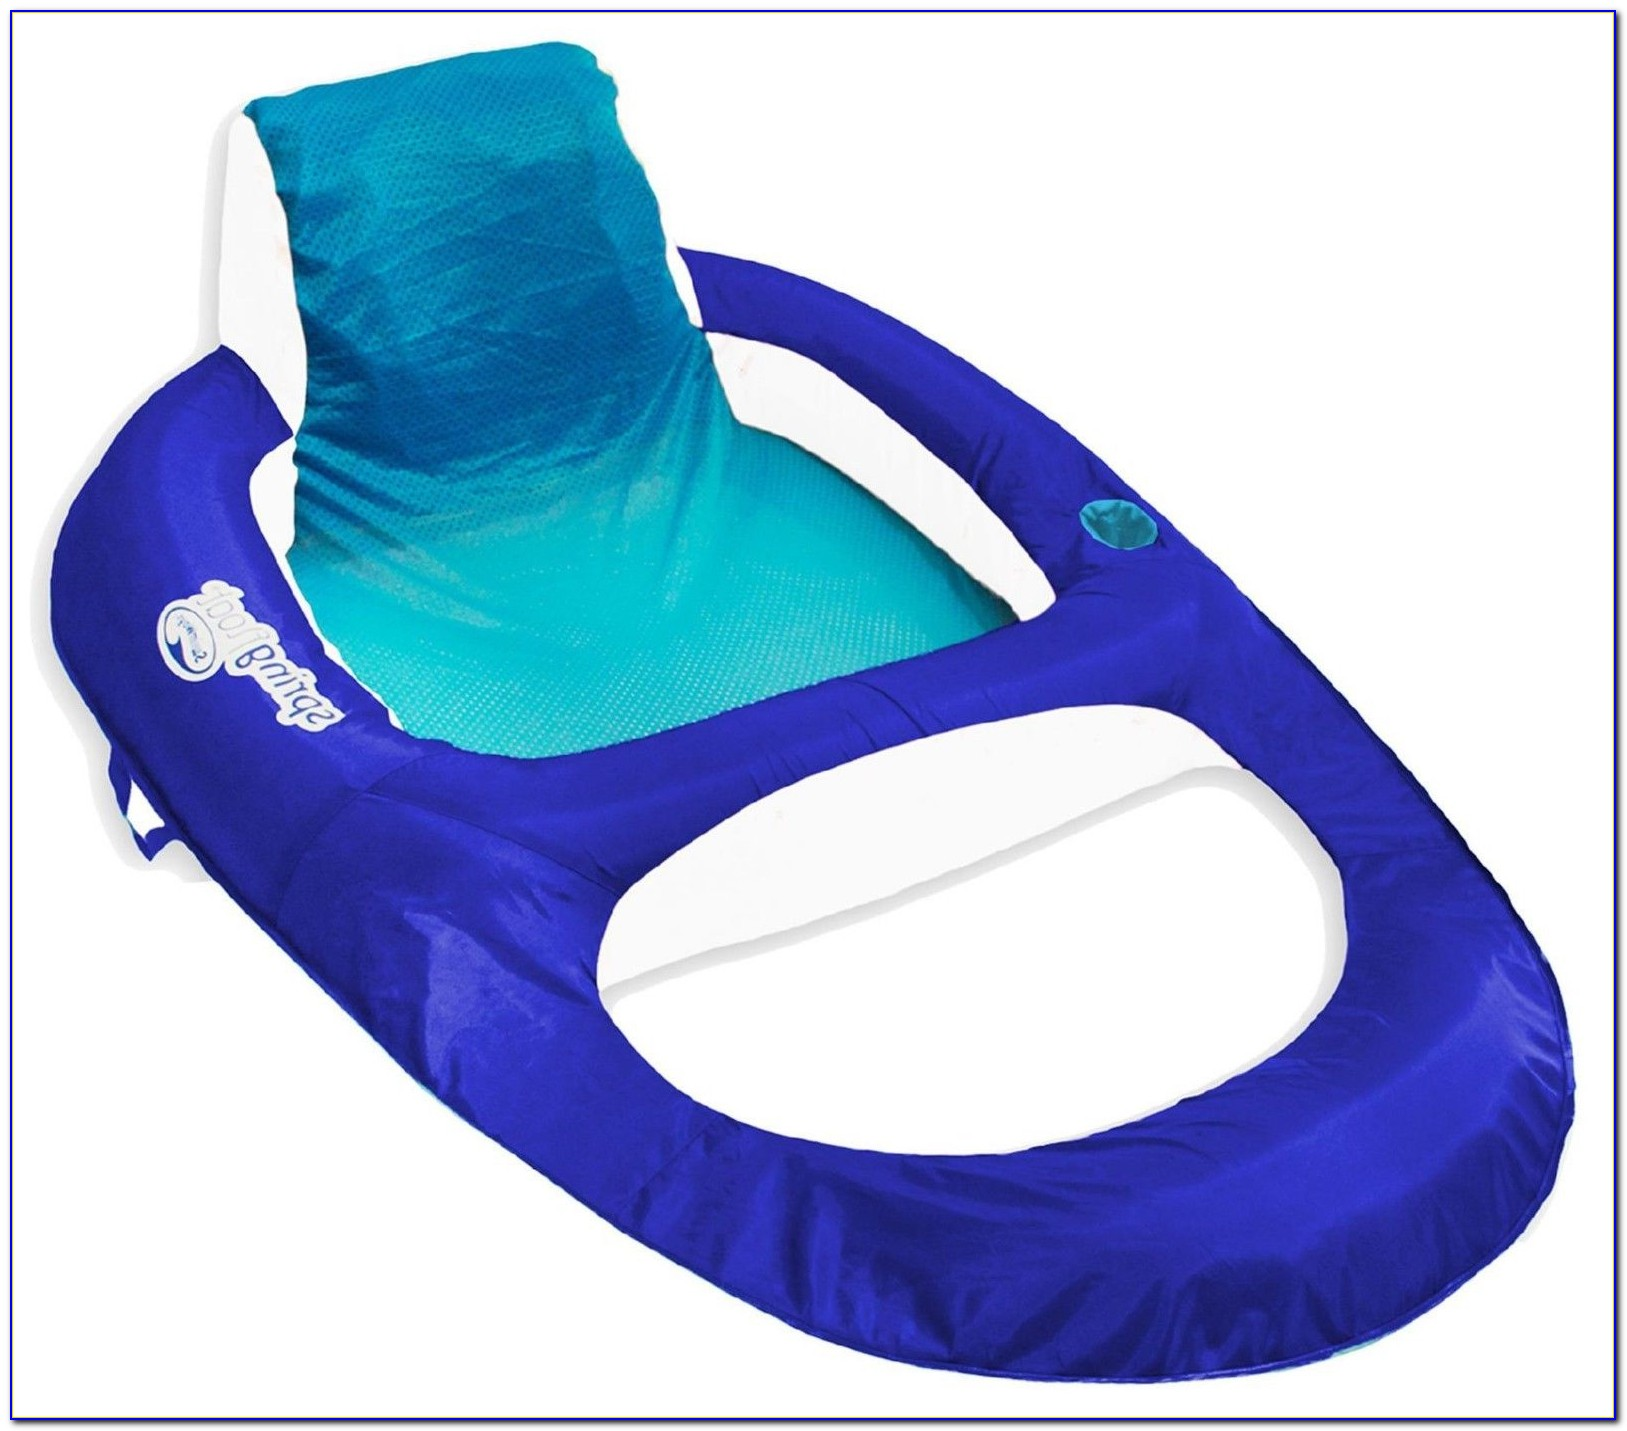 Floating Pool Lounge Chair Raft